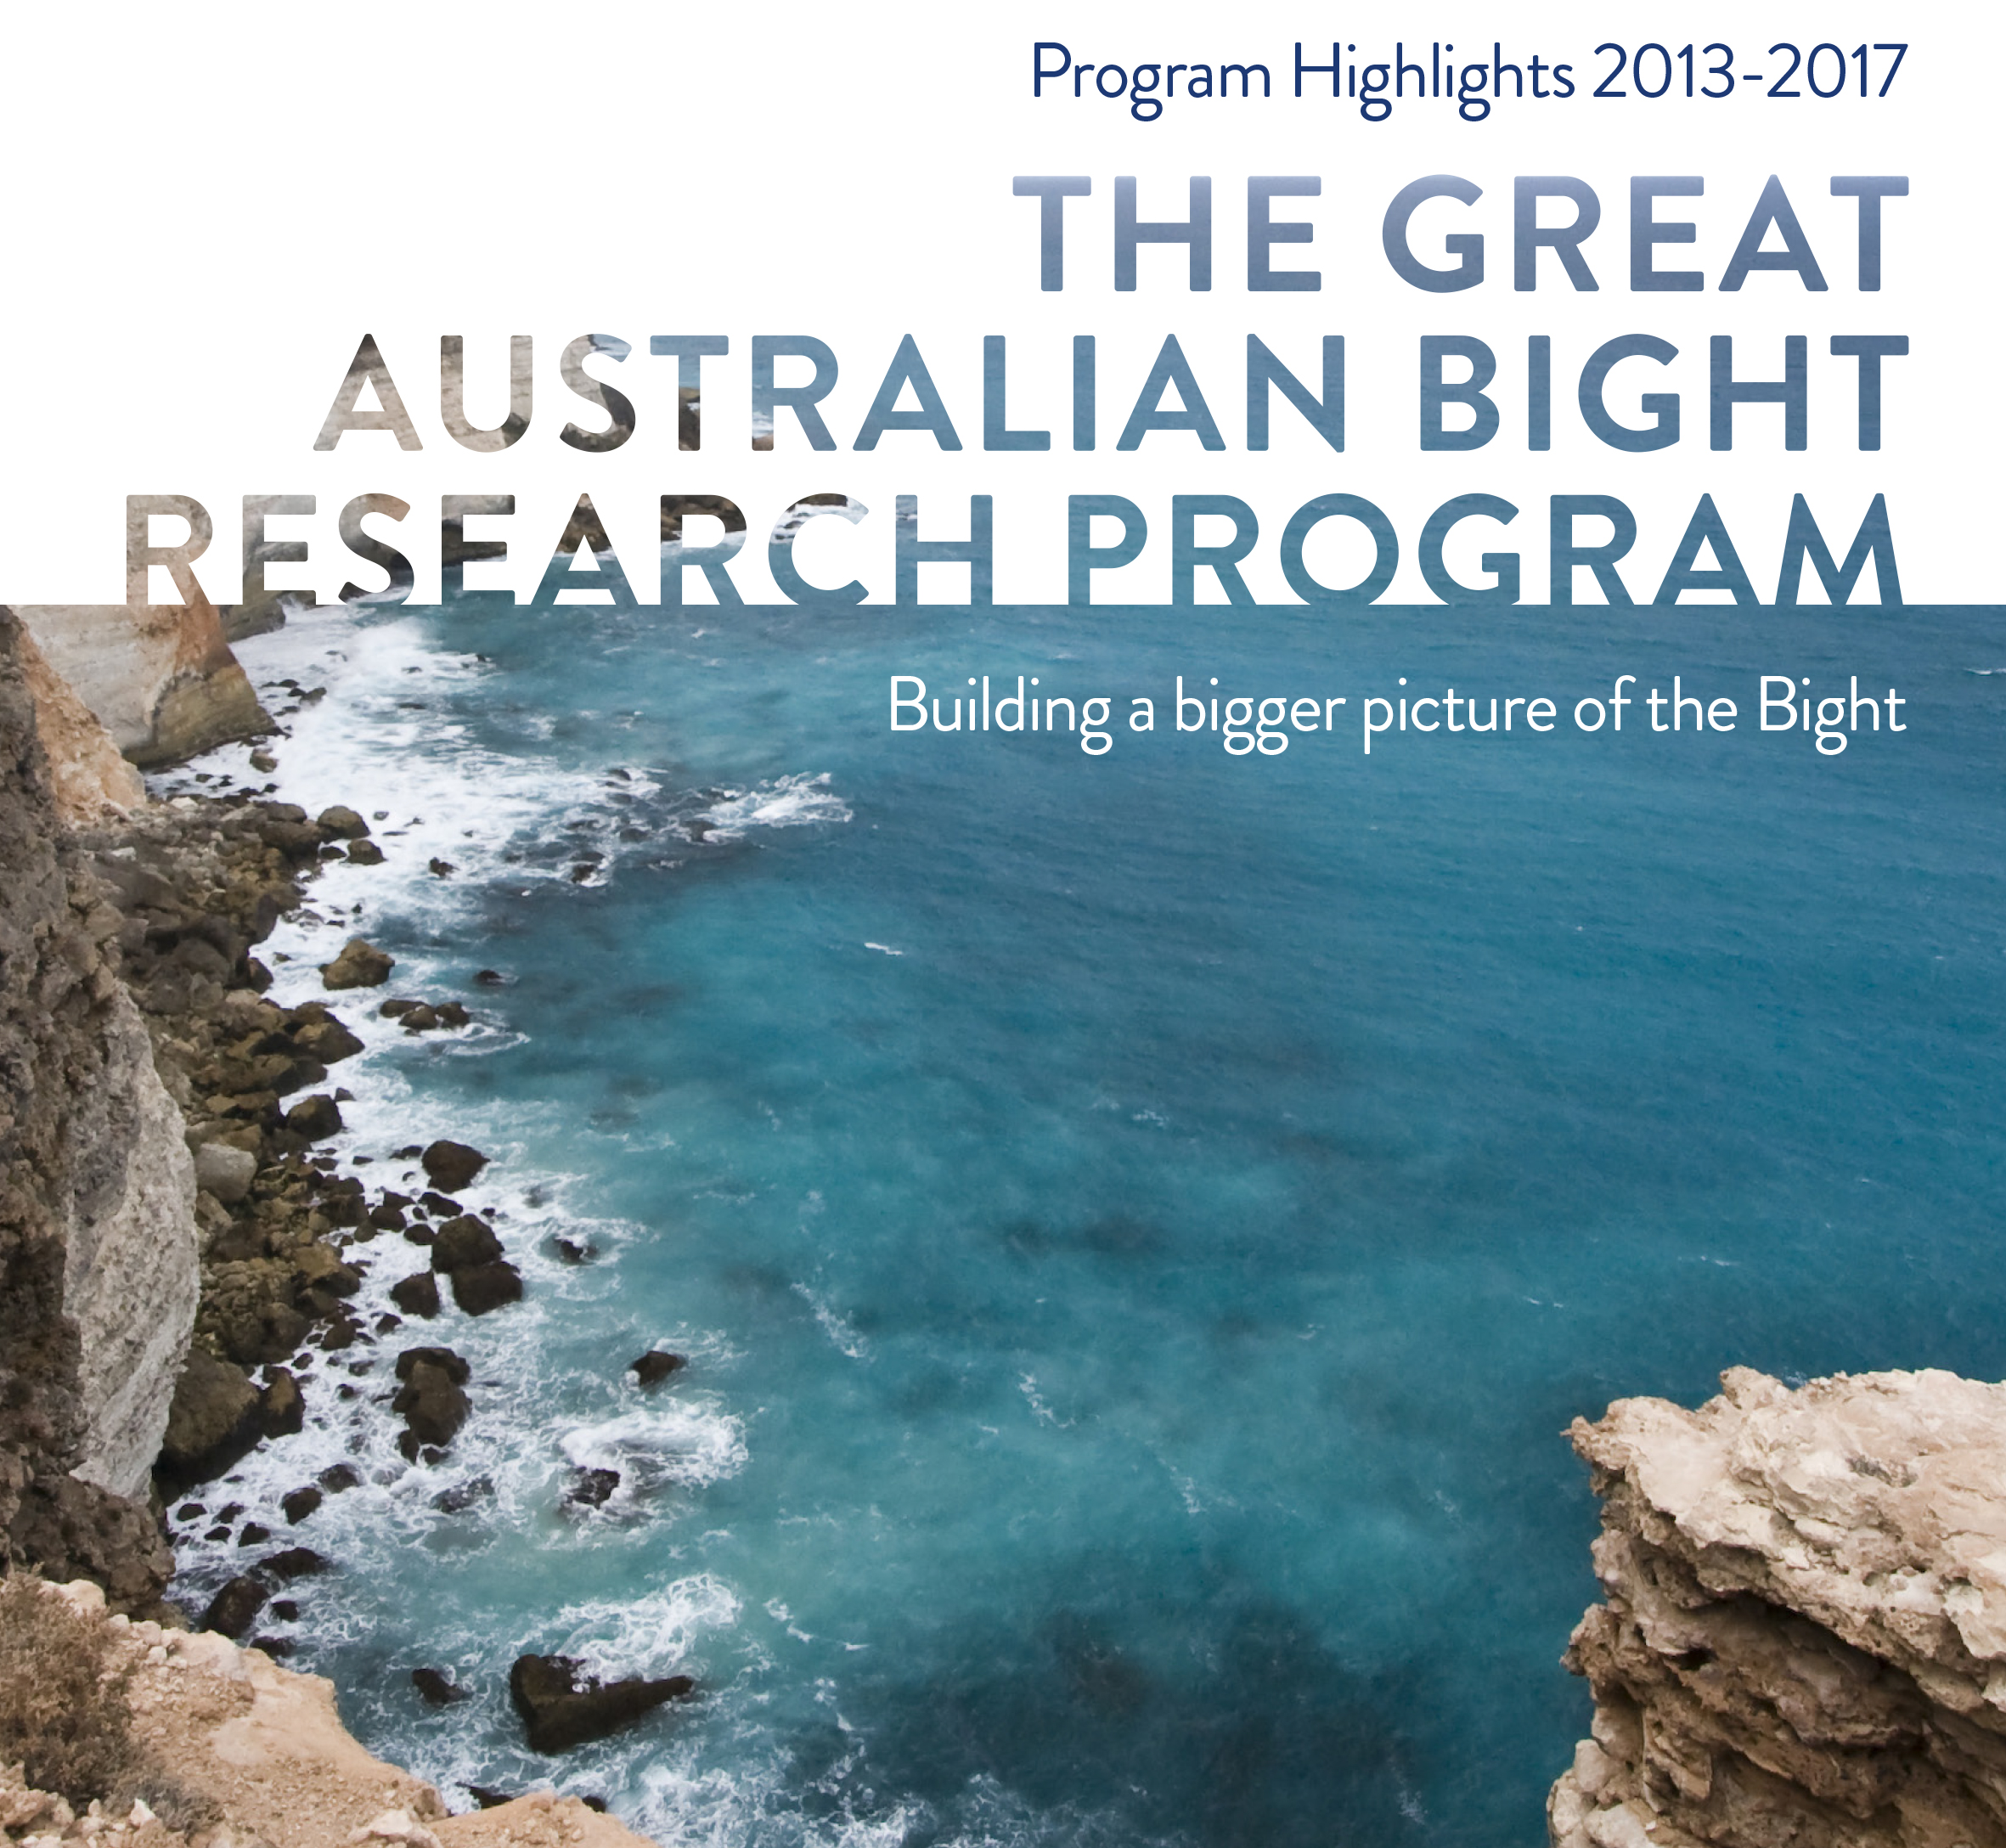 Great Australian Bight Program Highlights 2013-2017